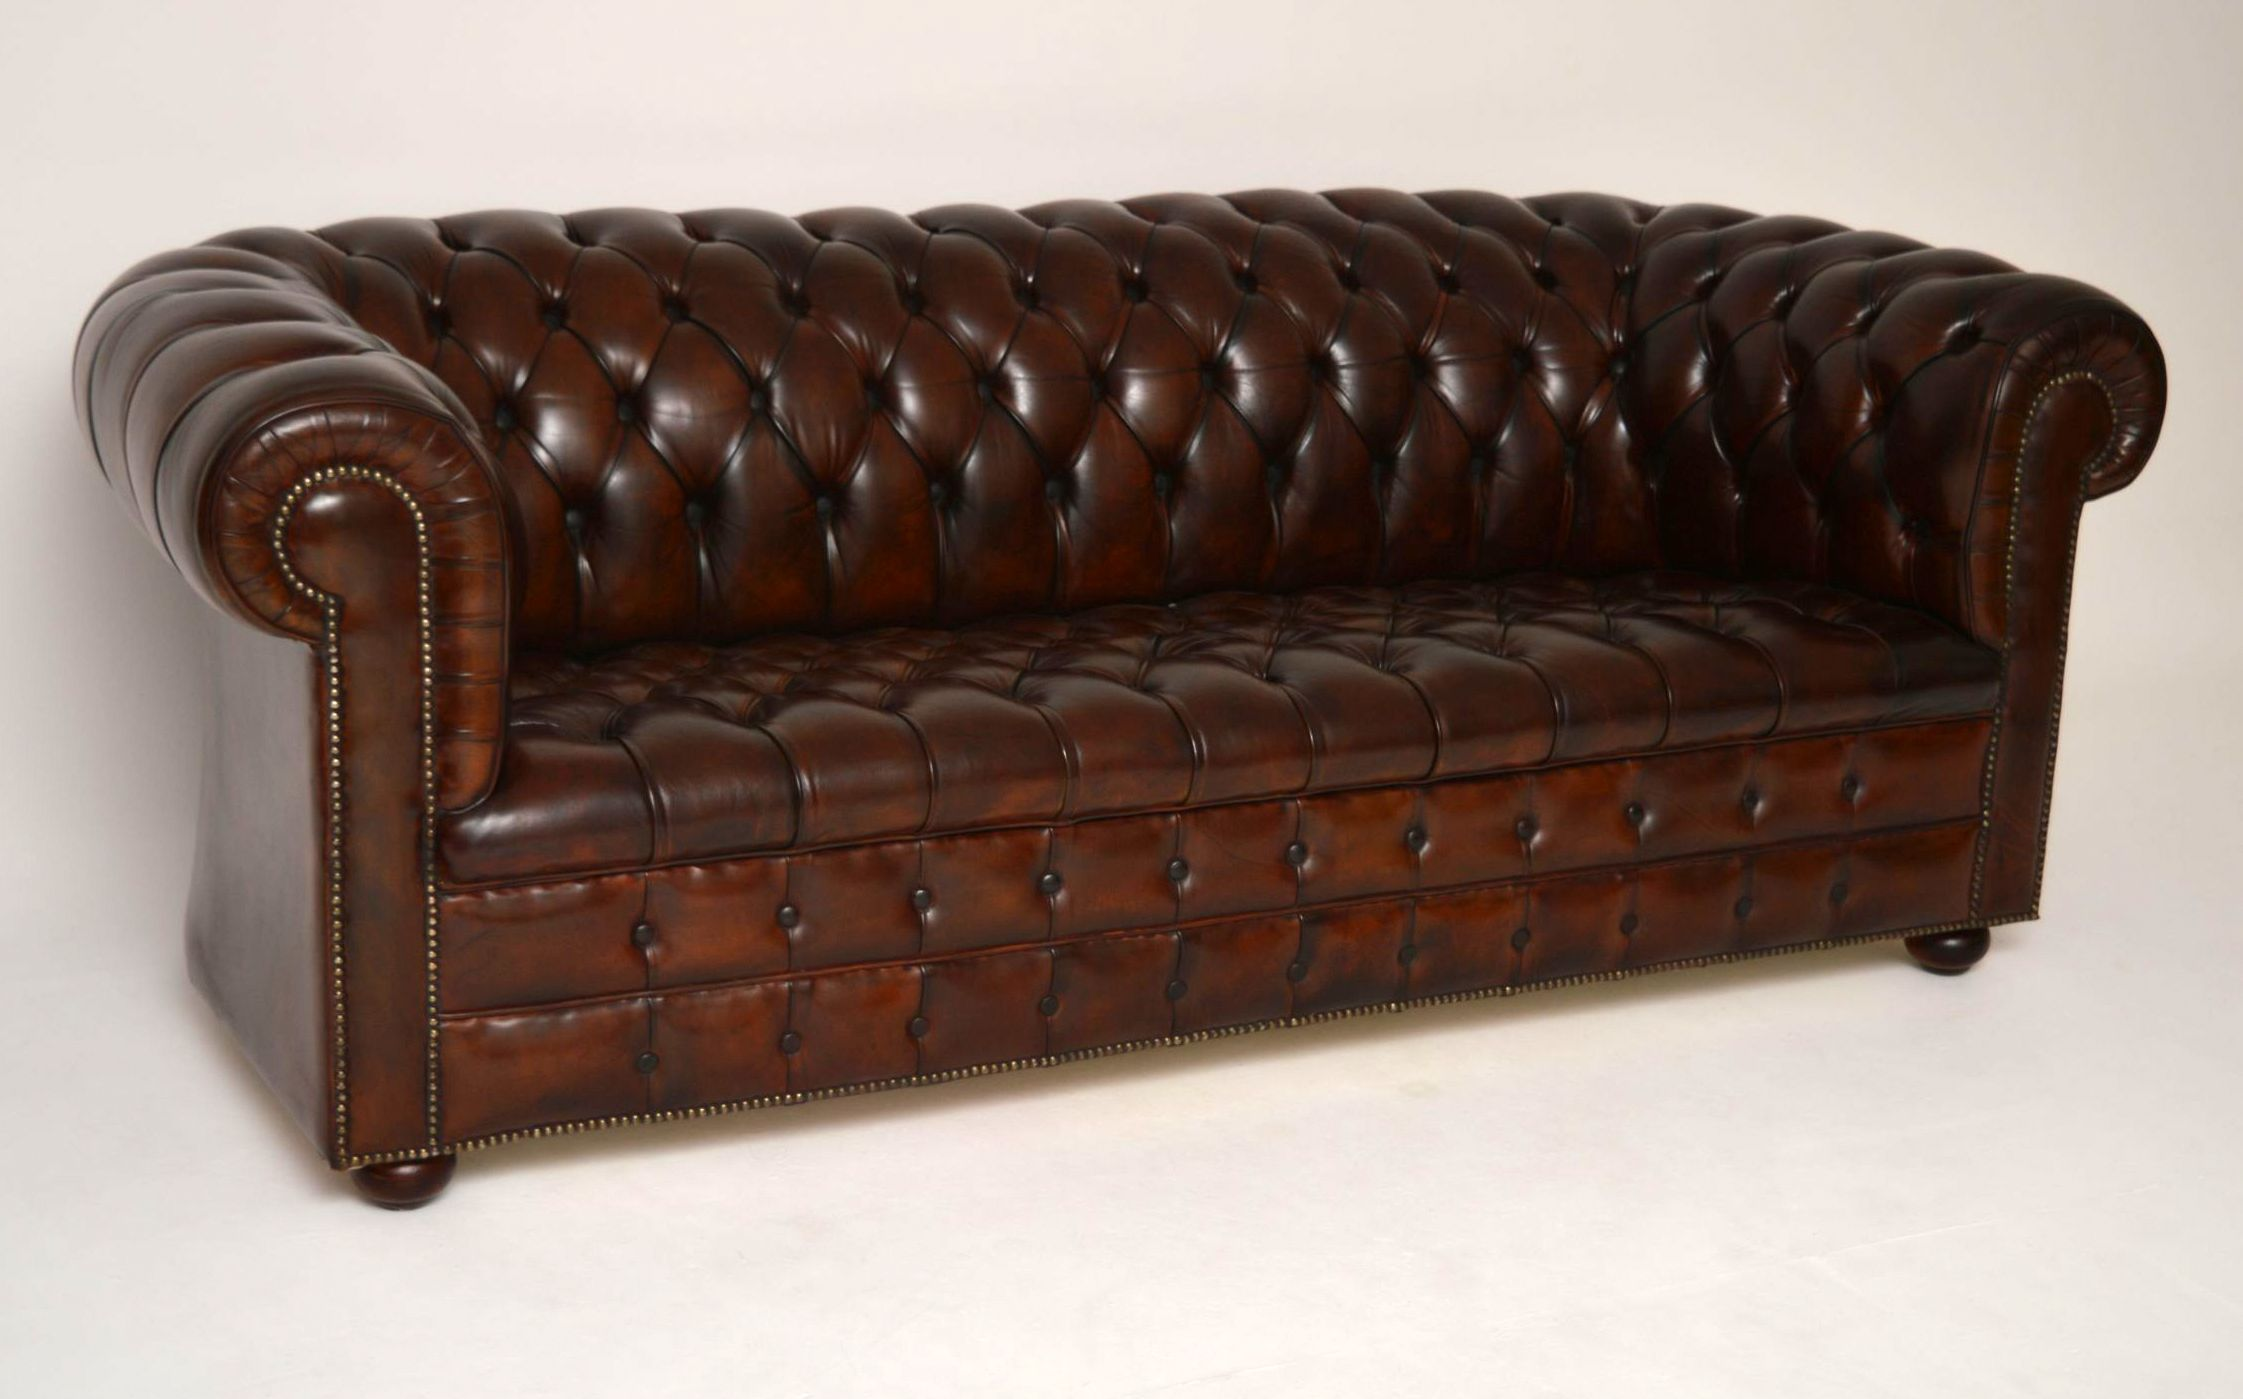 This antique deep buttoned leather Chesterfield is very smart